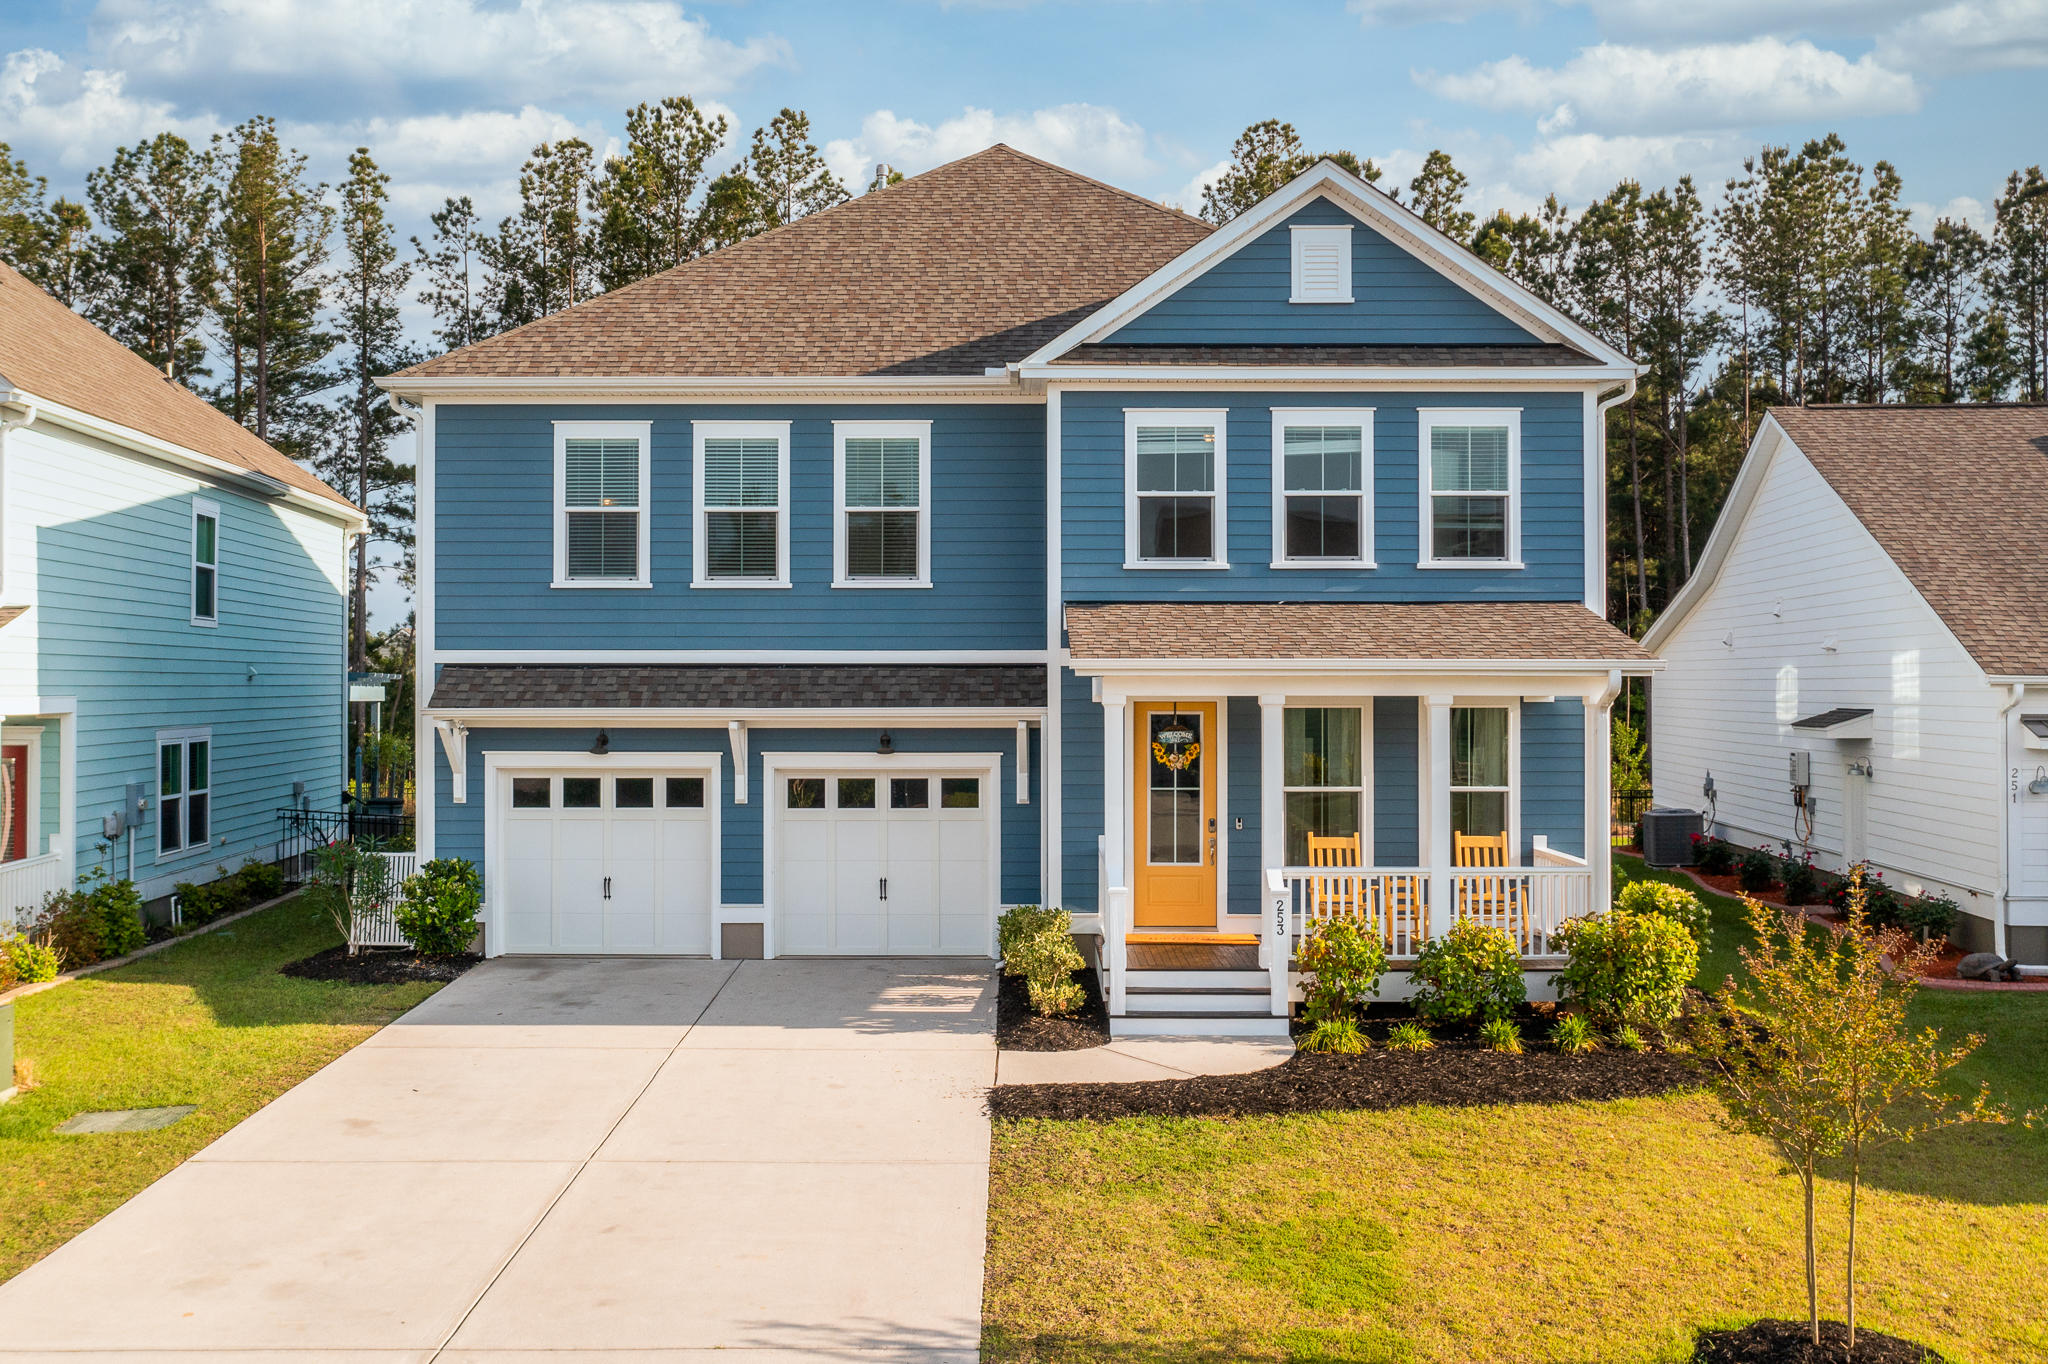 253 Calm Water Way Summerville, SC 29486